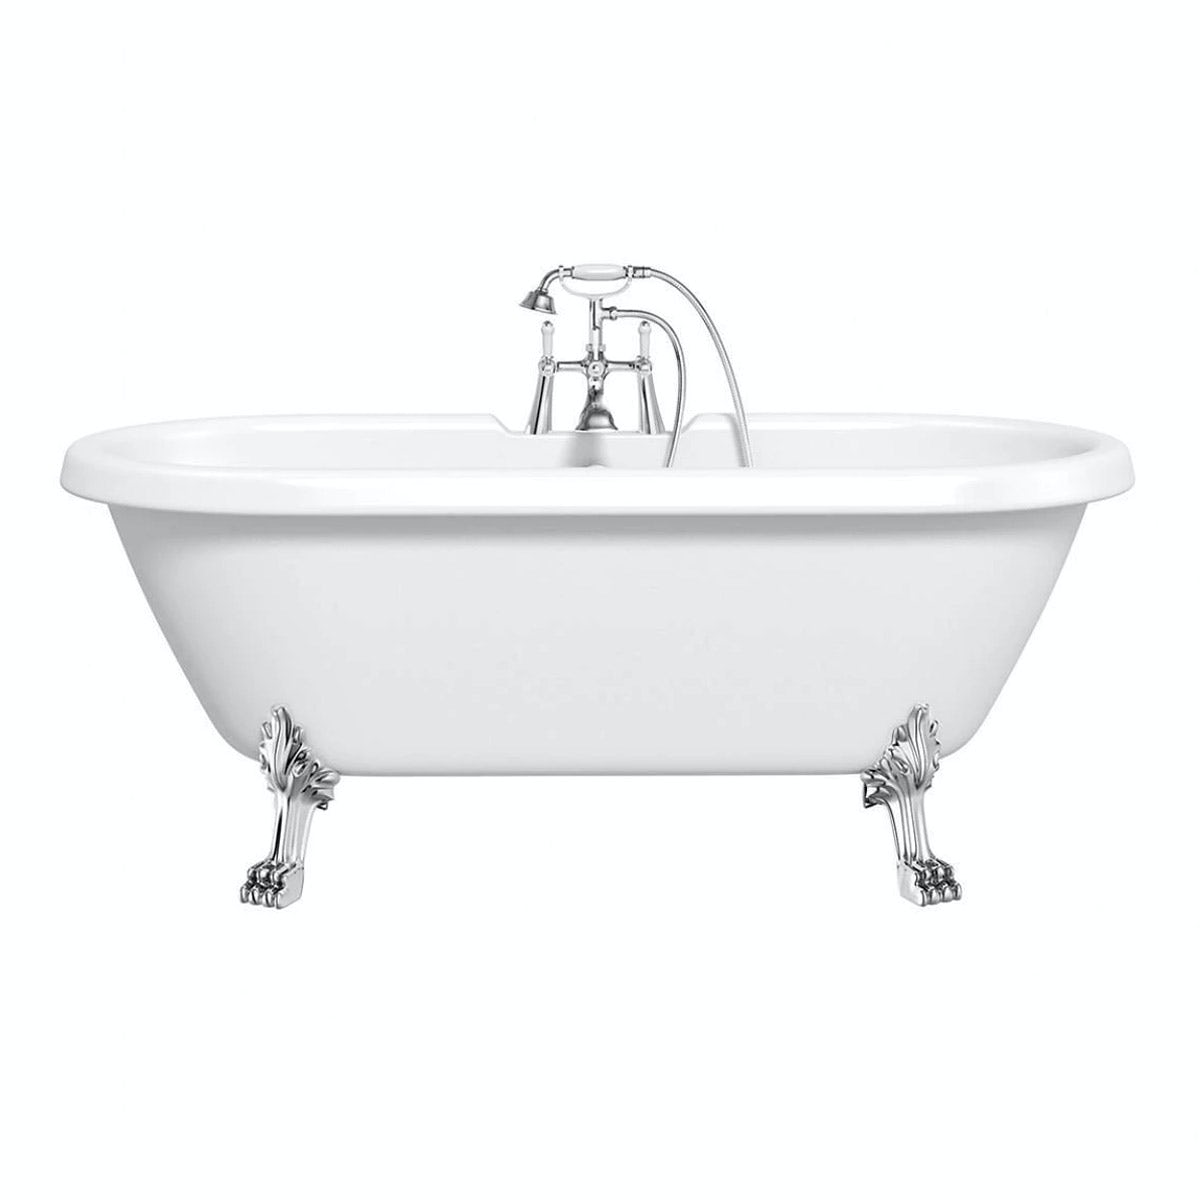 Shakespeare Roll Top Bath With Dragon Feet 1770mm Offer Pack